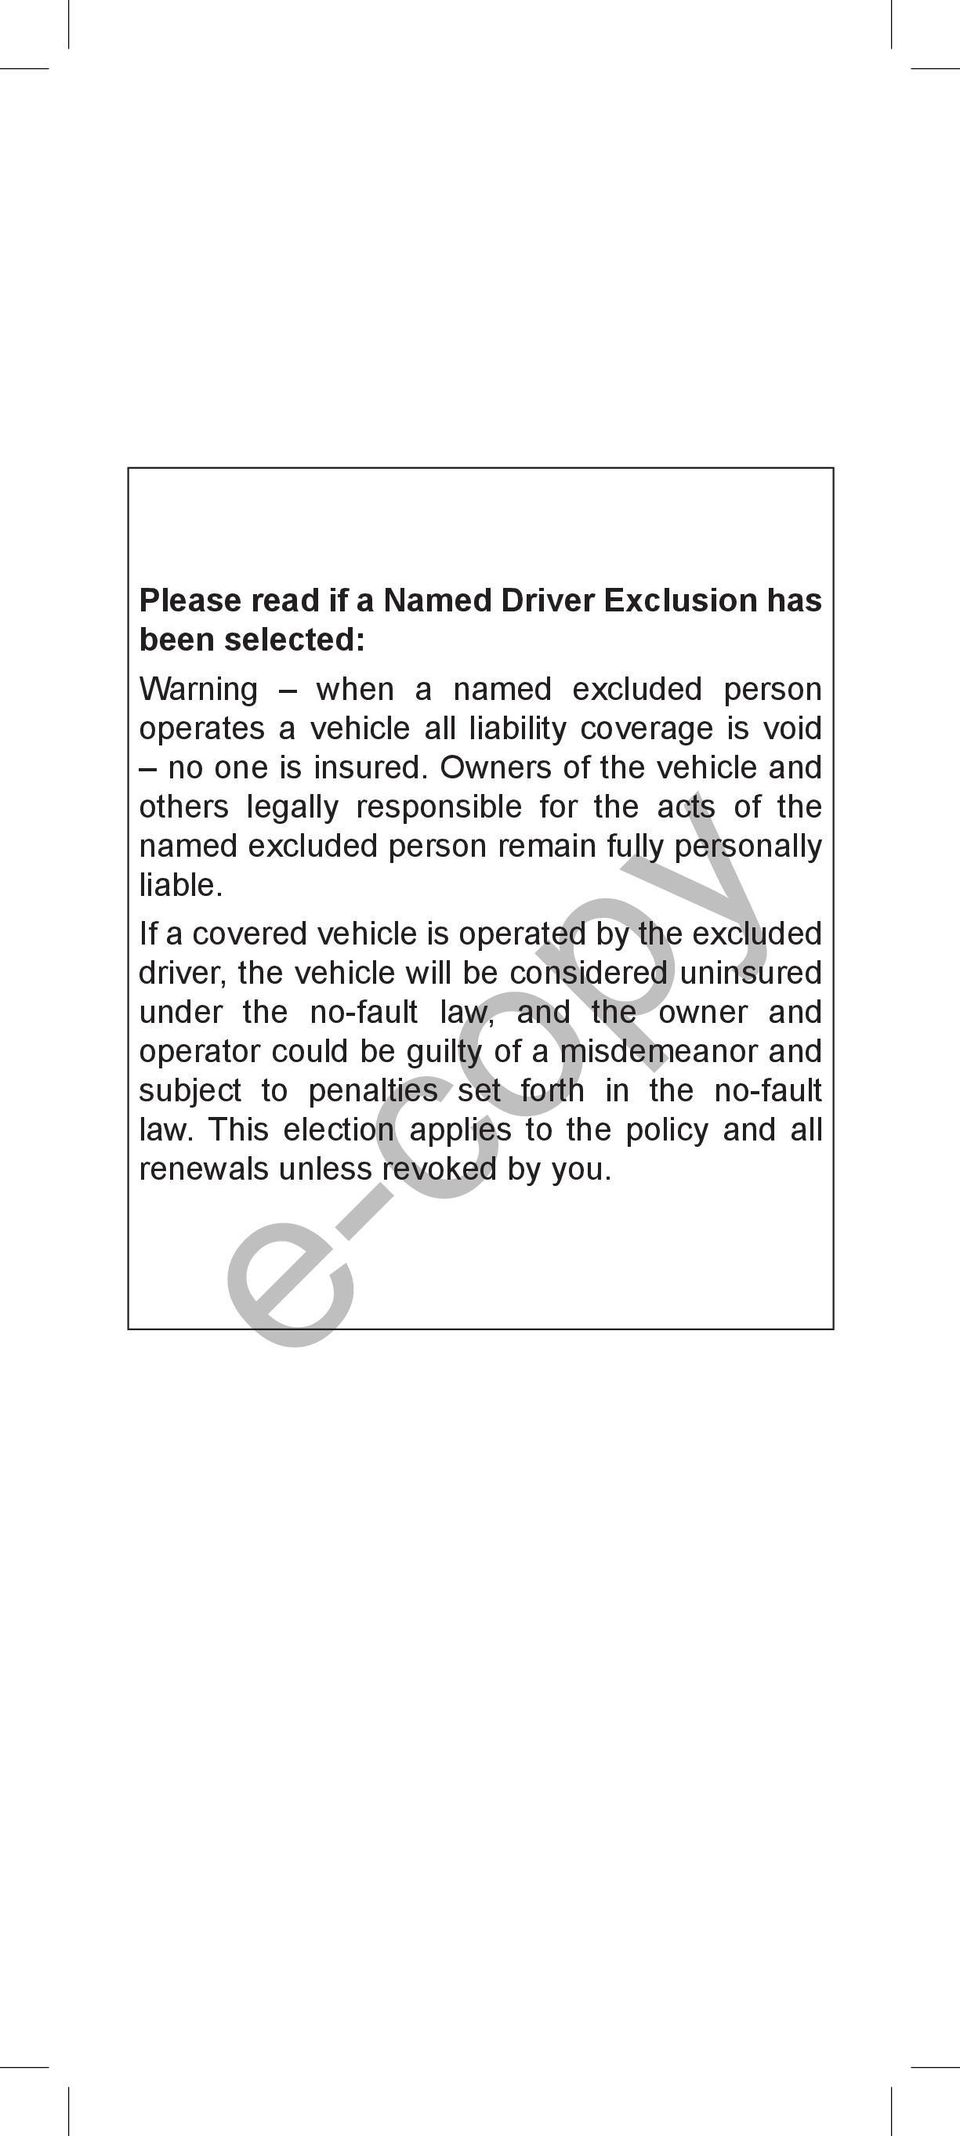 If a covered vehicle is operated by the excluded driver, the vehicle will be considered uninsured under the no-fault law, and the owner and operator